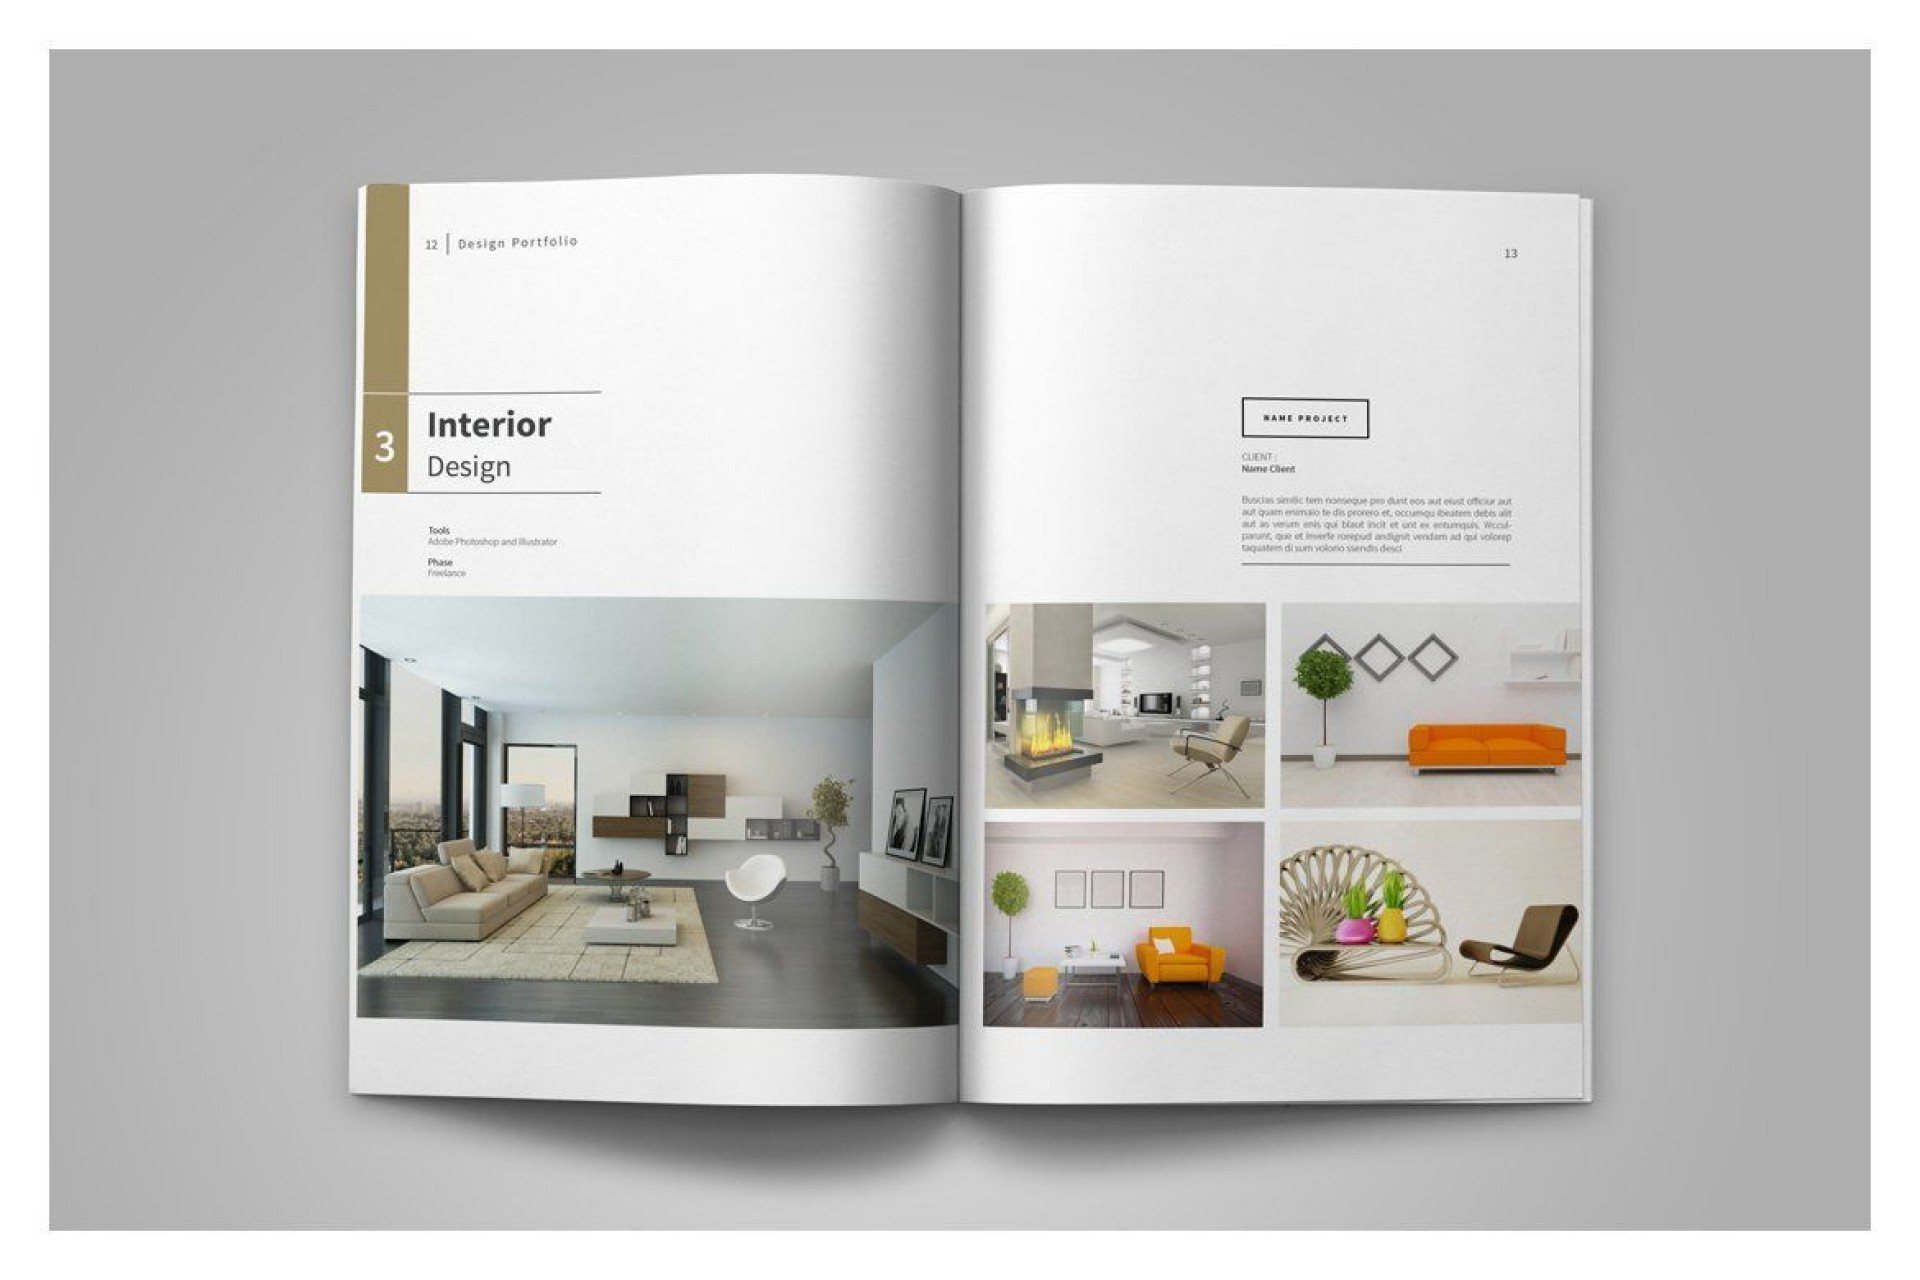 001 Incredible Interior Design Portfolio Template Concept  Ppt Free Download Layout1920